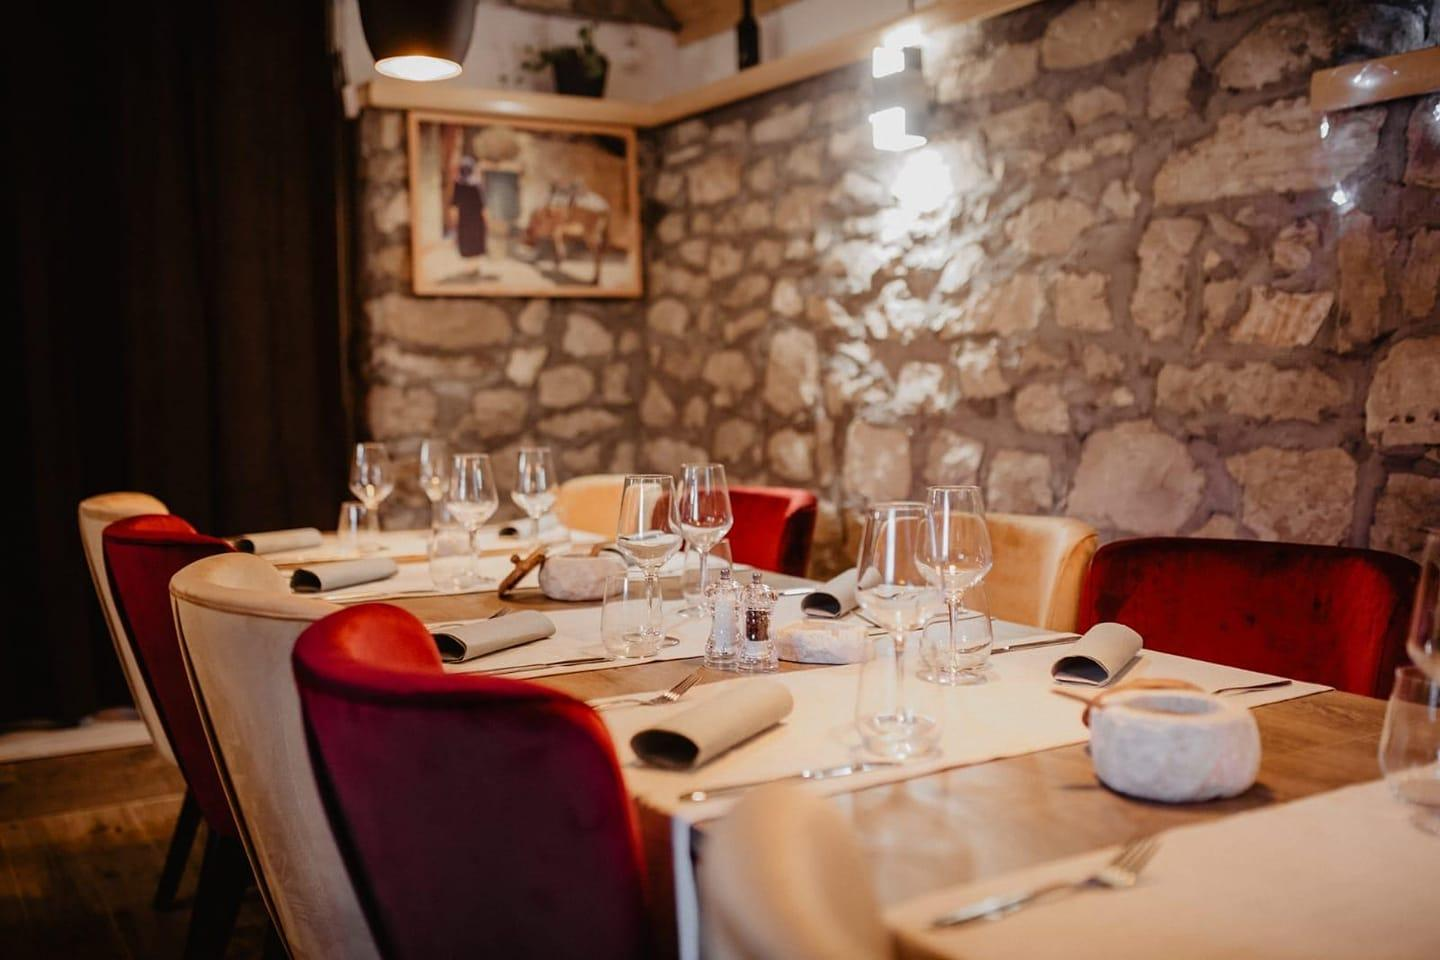 Sučić family estate: Reviving the rural lifestyle through the traditional gastronomy